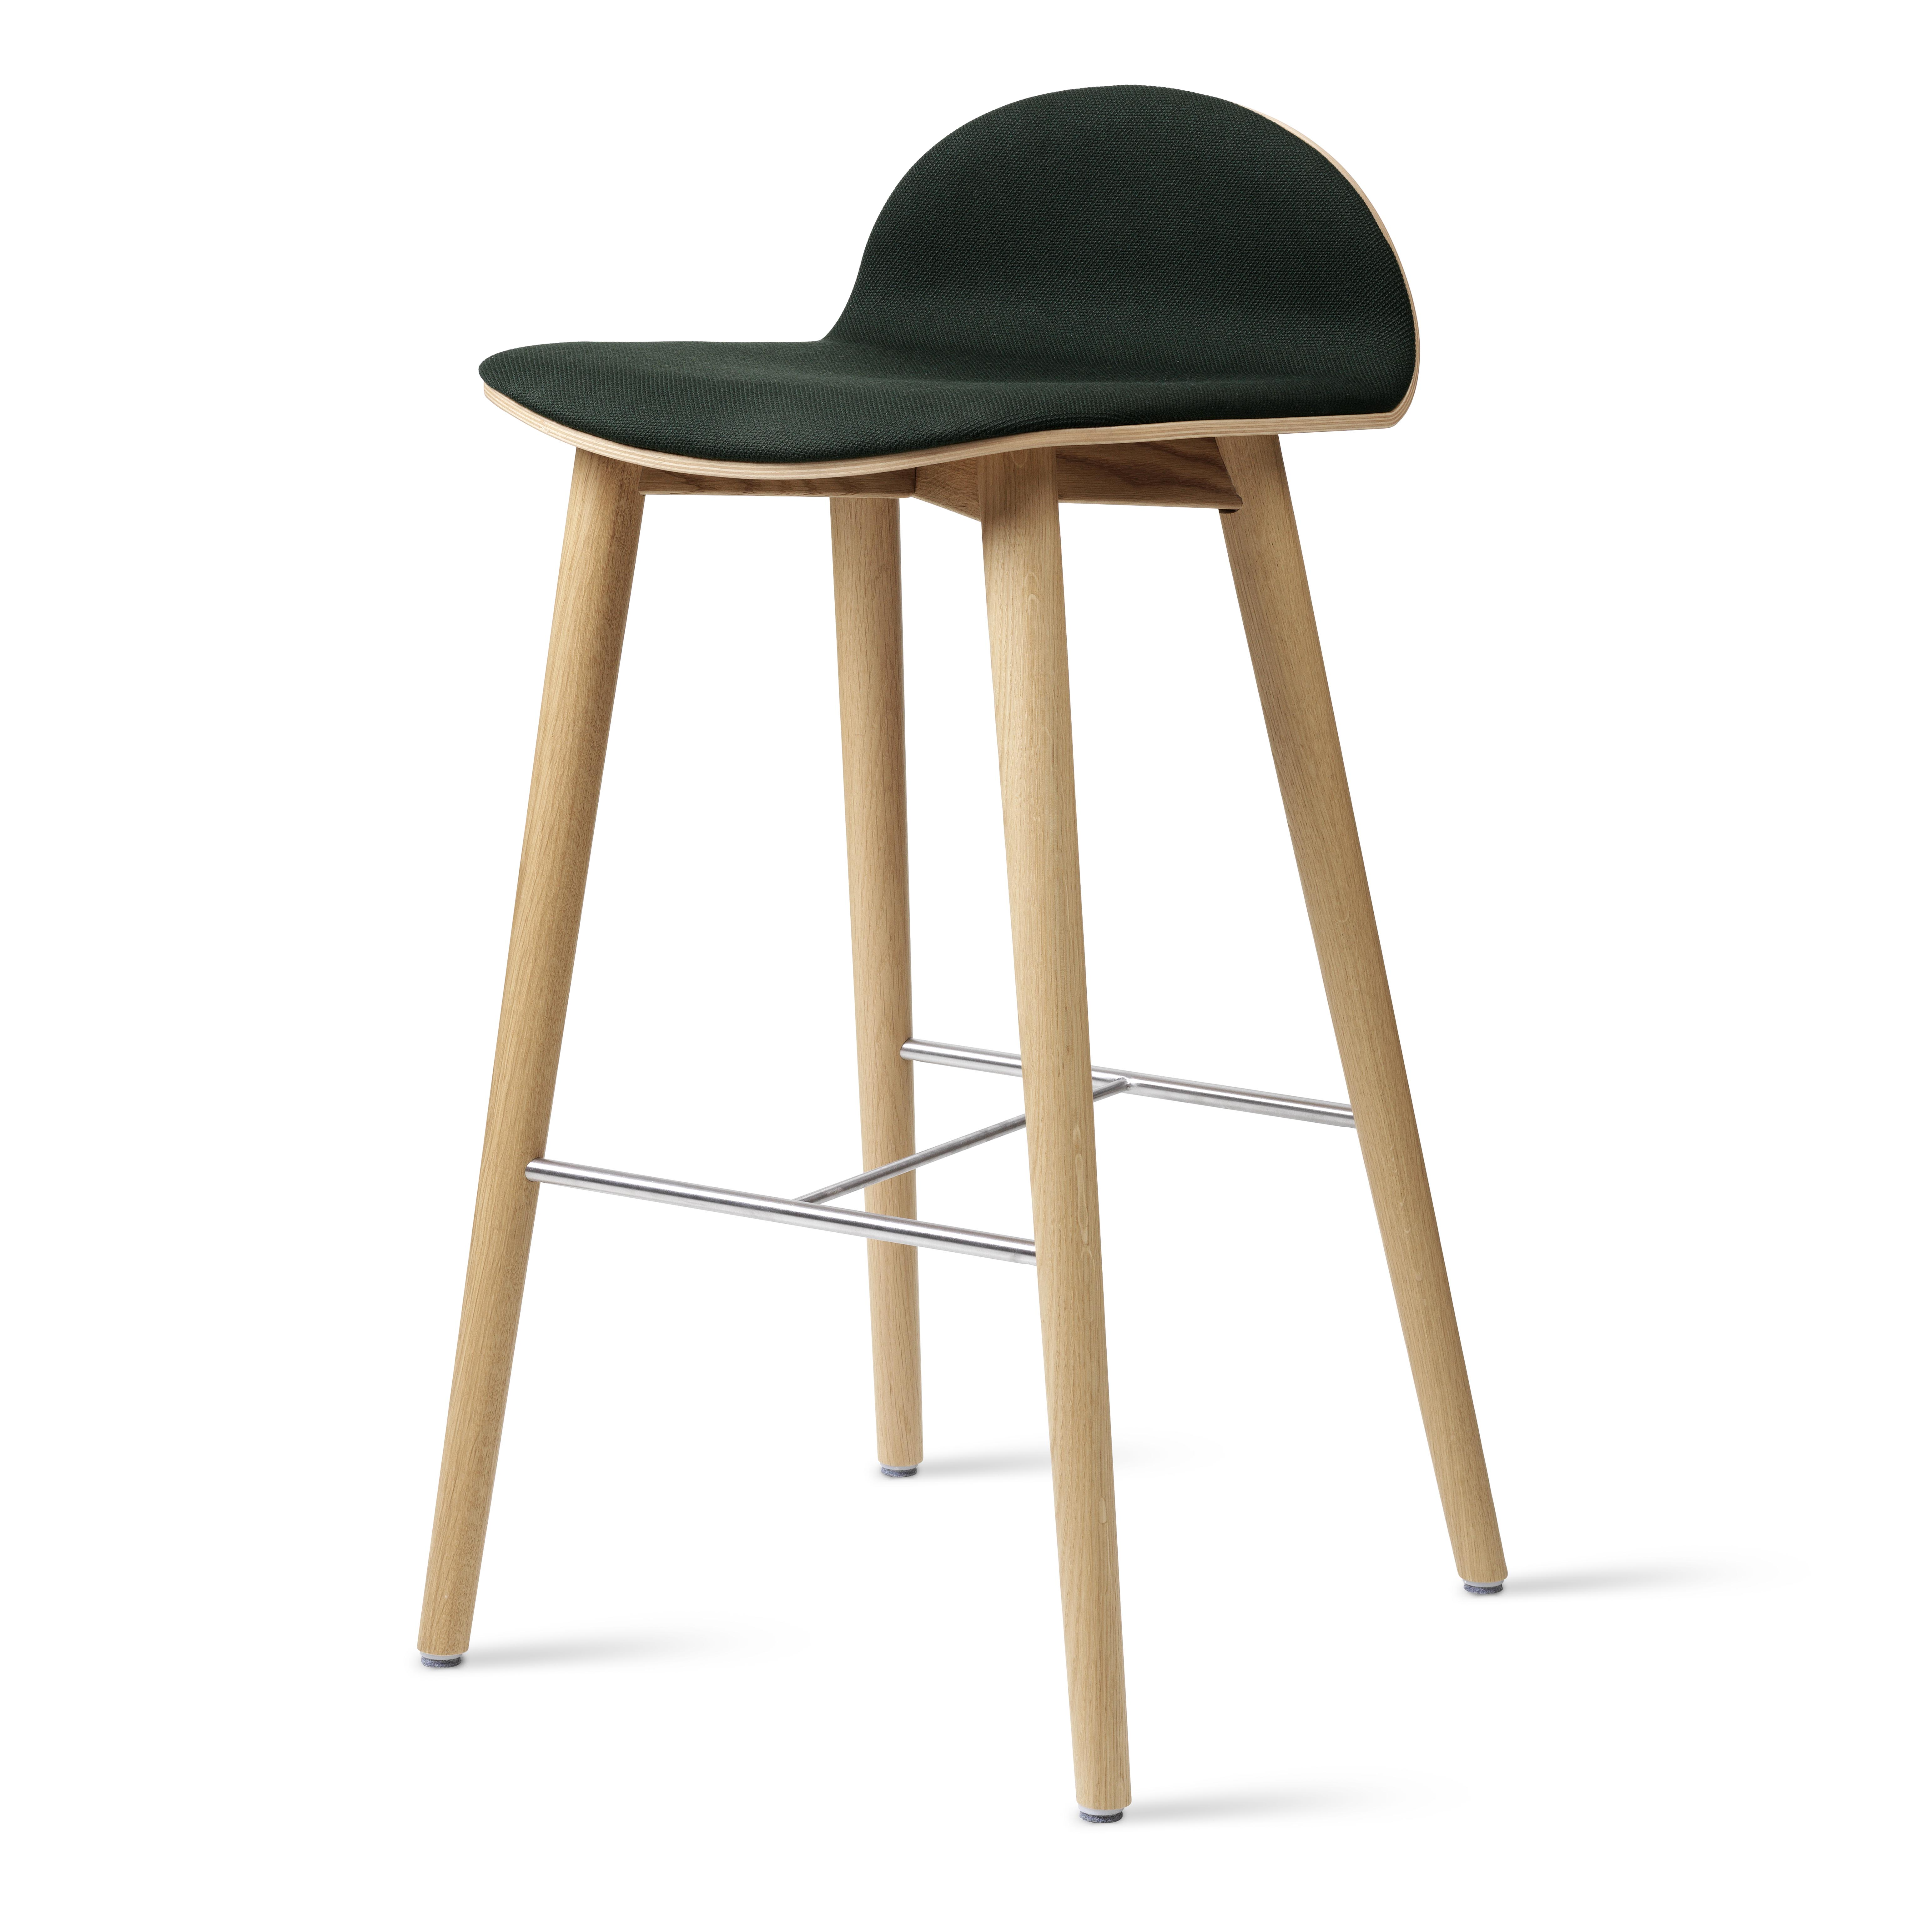 Nam Nam Wood Stool Low Back | Chairs & Stools, Nam Nam Stools